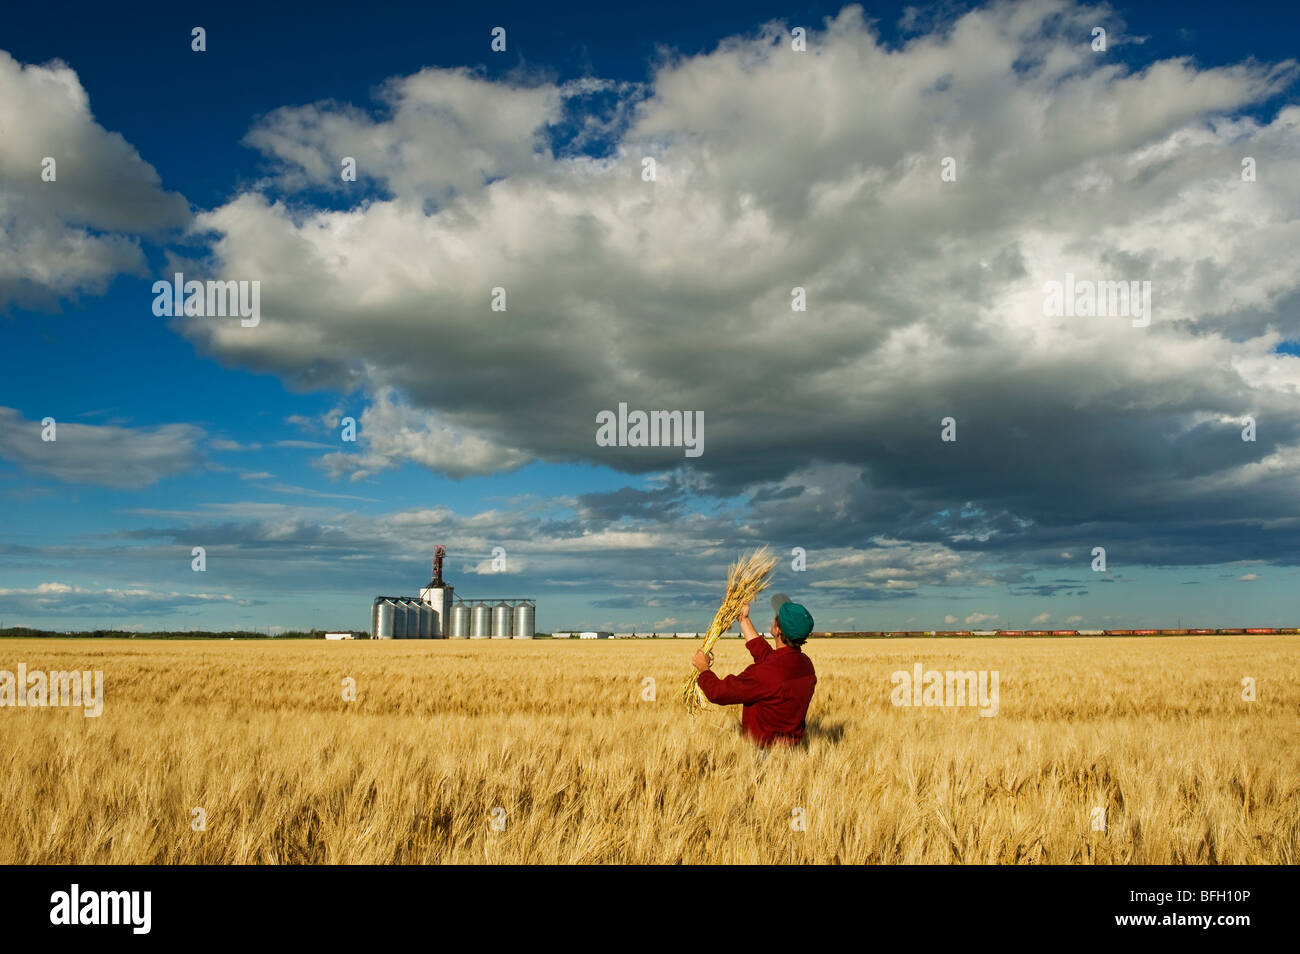 Man looks mature barley with an inland grain terminal and developing cumulonimbus clouds in background near Winnipeg - Stock Image